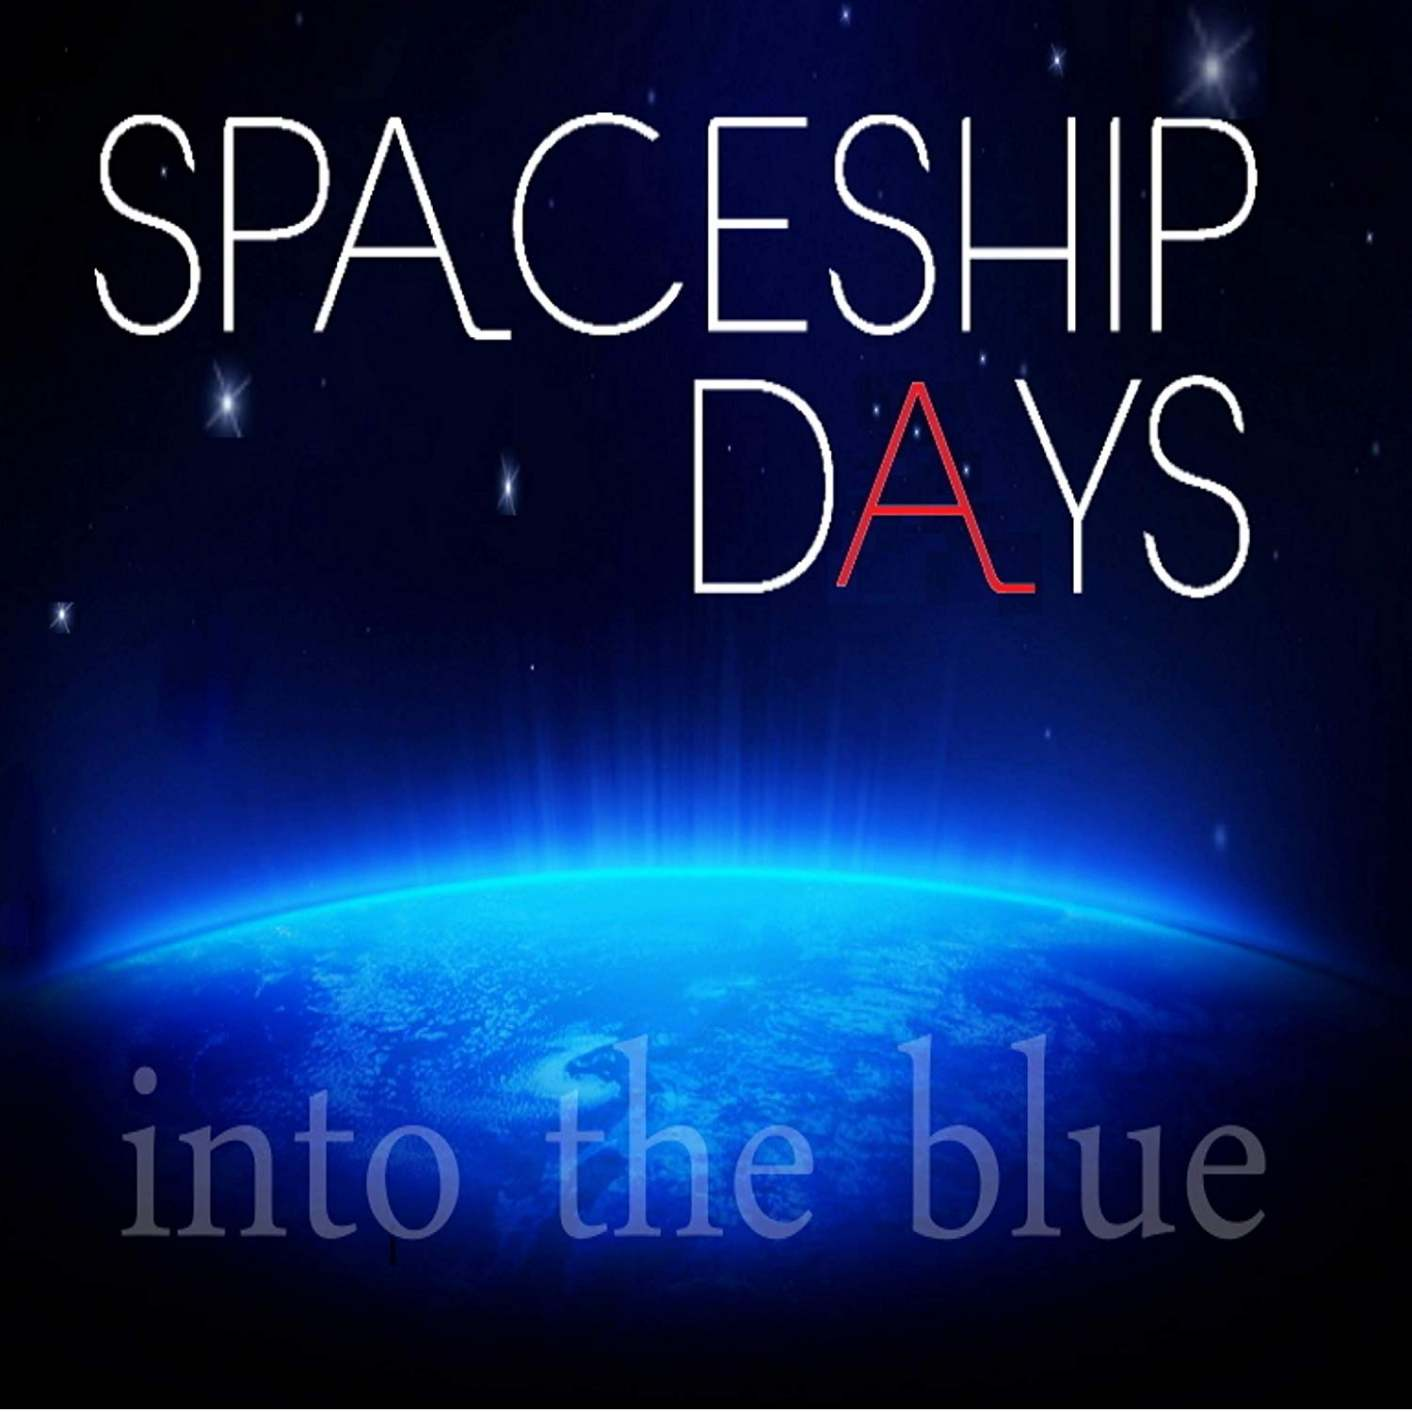 12762847-spaceship-days-into-the-blue